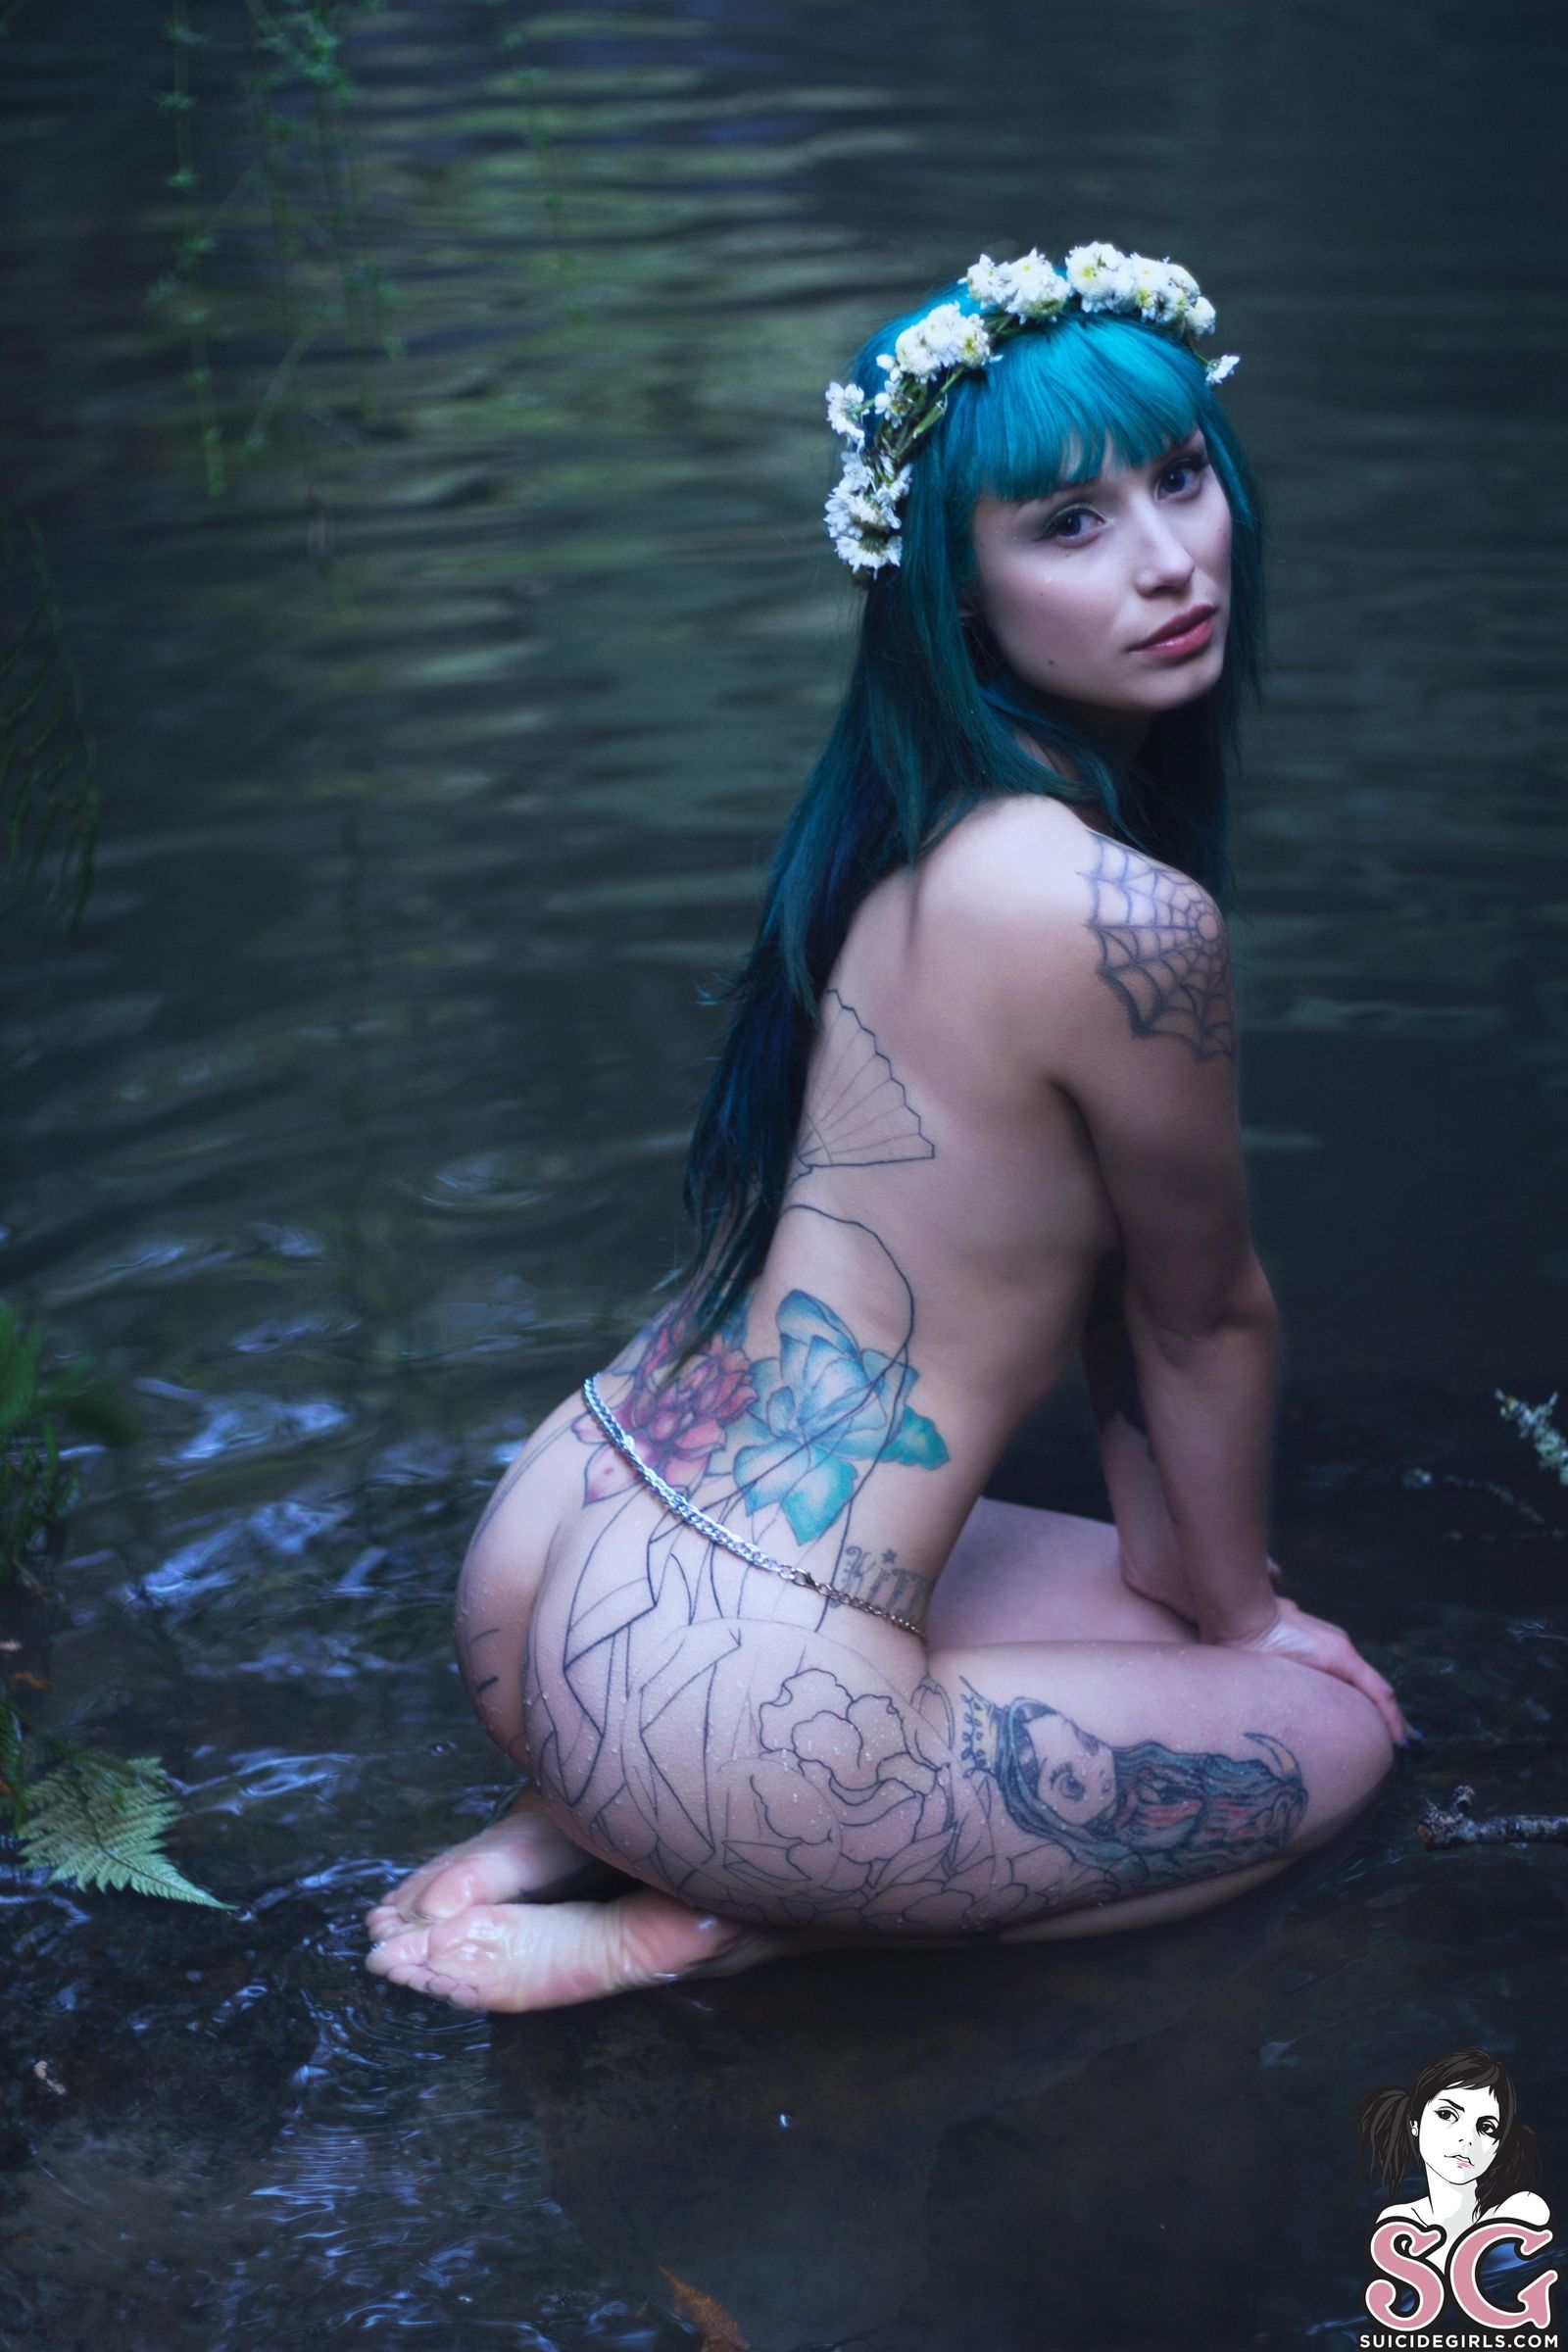 Les Suicide Girl terrorlydia - les nymphes des forêts #inked #sg #tattoo